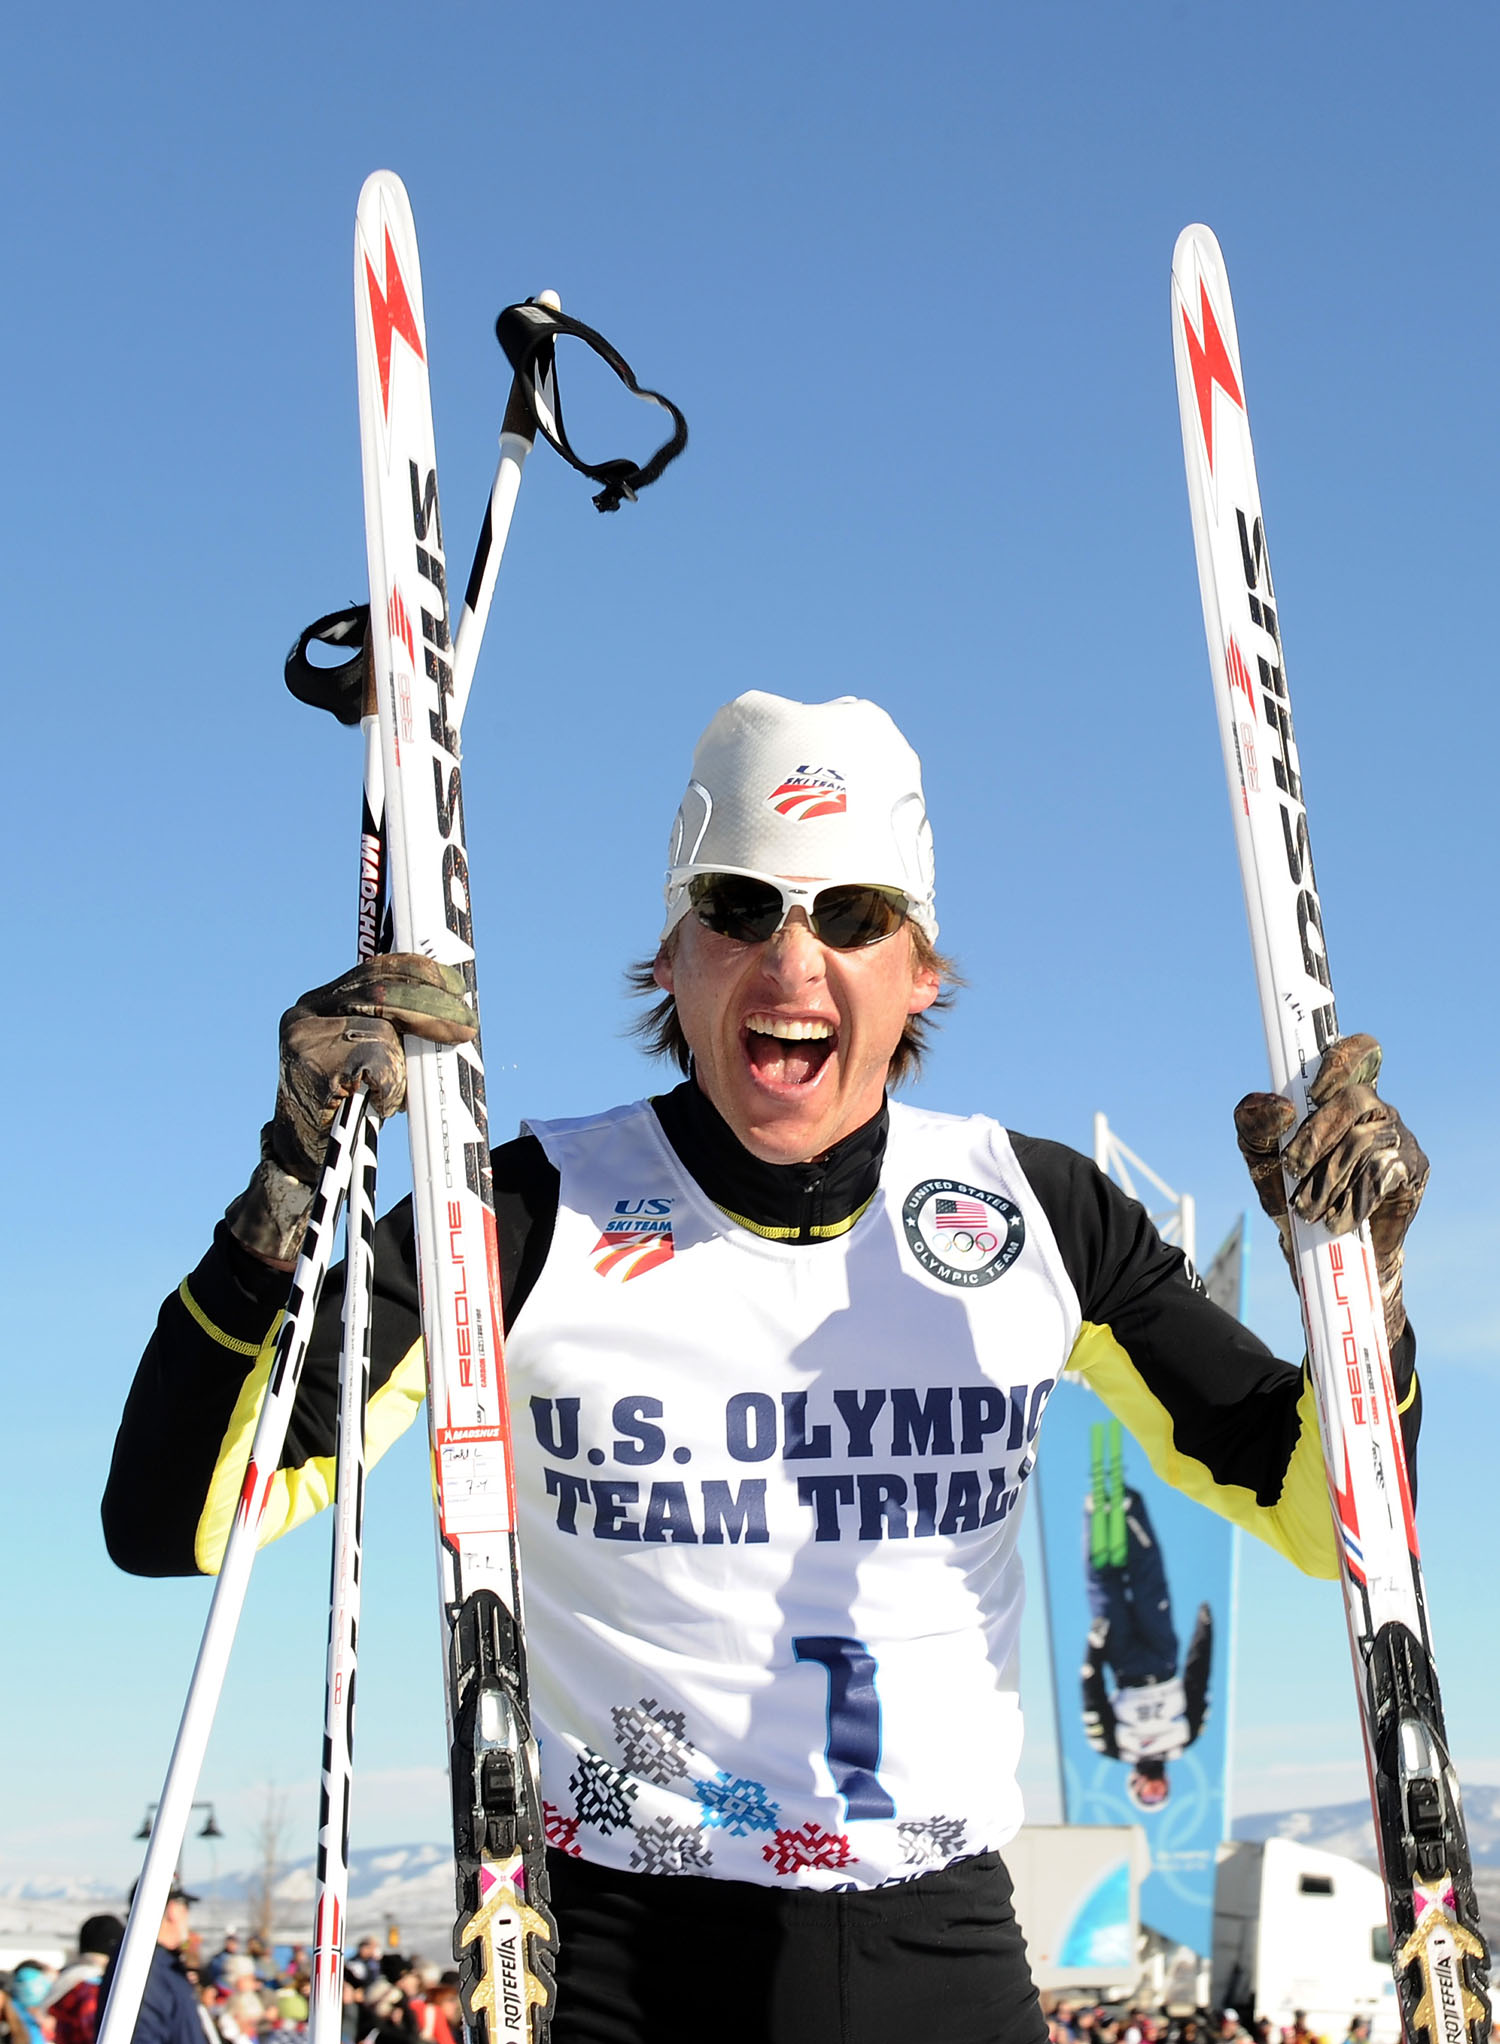 Todd Lodwick celebrates his first place finish in the 10K to secure a place on the United States Olympic team for Sochi 2014 during the Nordic Combined Olympic Trial Dec. 28, 2013 in Park City, Utah. Lodwick was chosen to carry the American flag during the opening ceremony of the 2014 Olympics in Sochi, Russia.